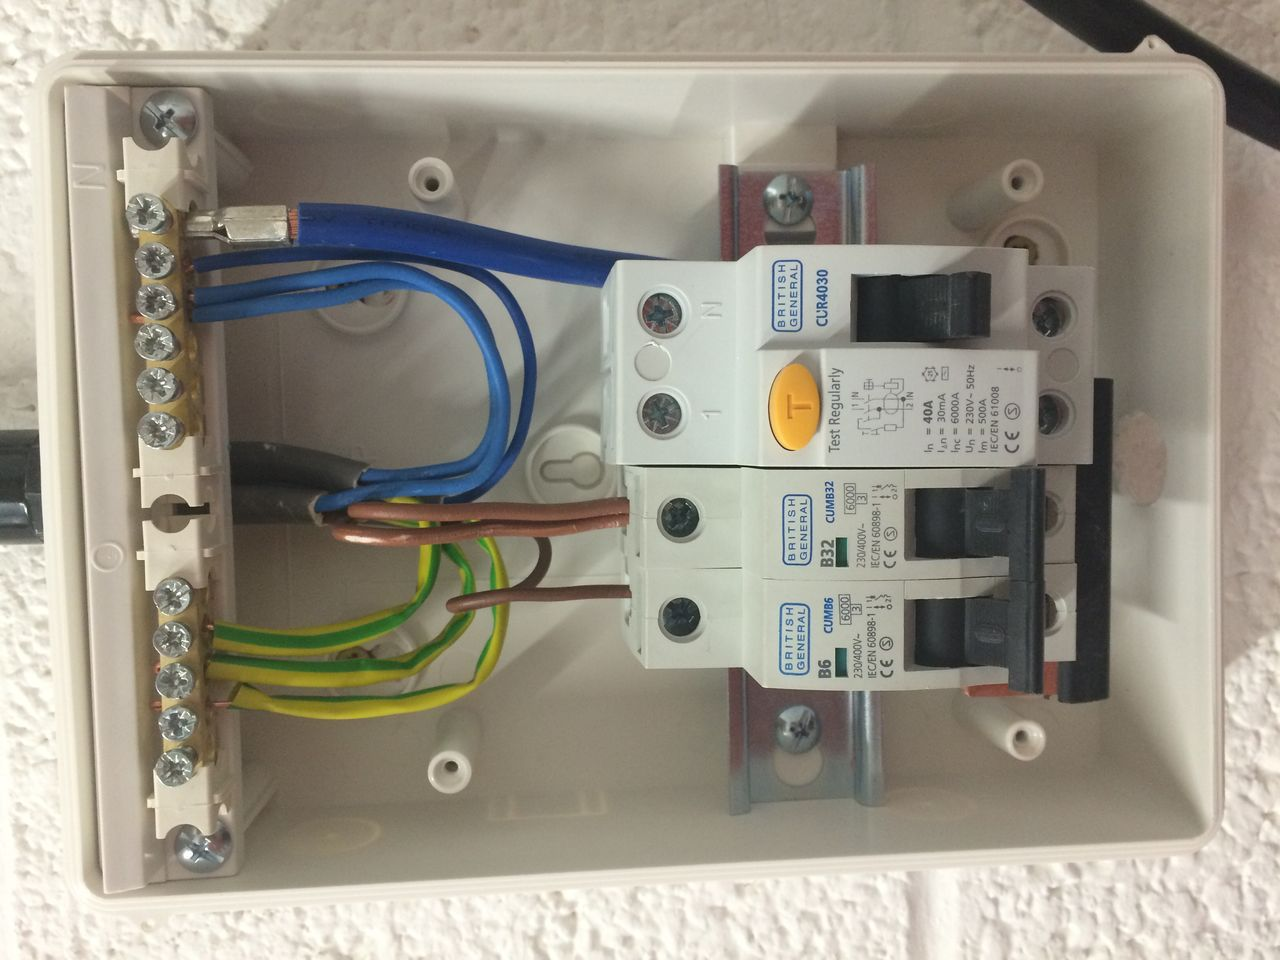 Wiring Diagram For Consumer Unit Poulan 2150 Chainsaw Fuel Line Image Result How To Wire Garage Fuse Box Electrical